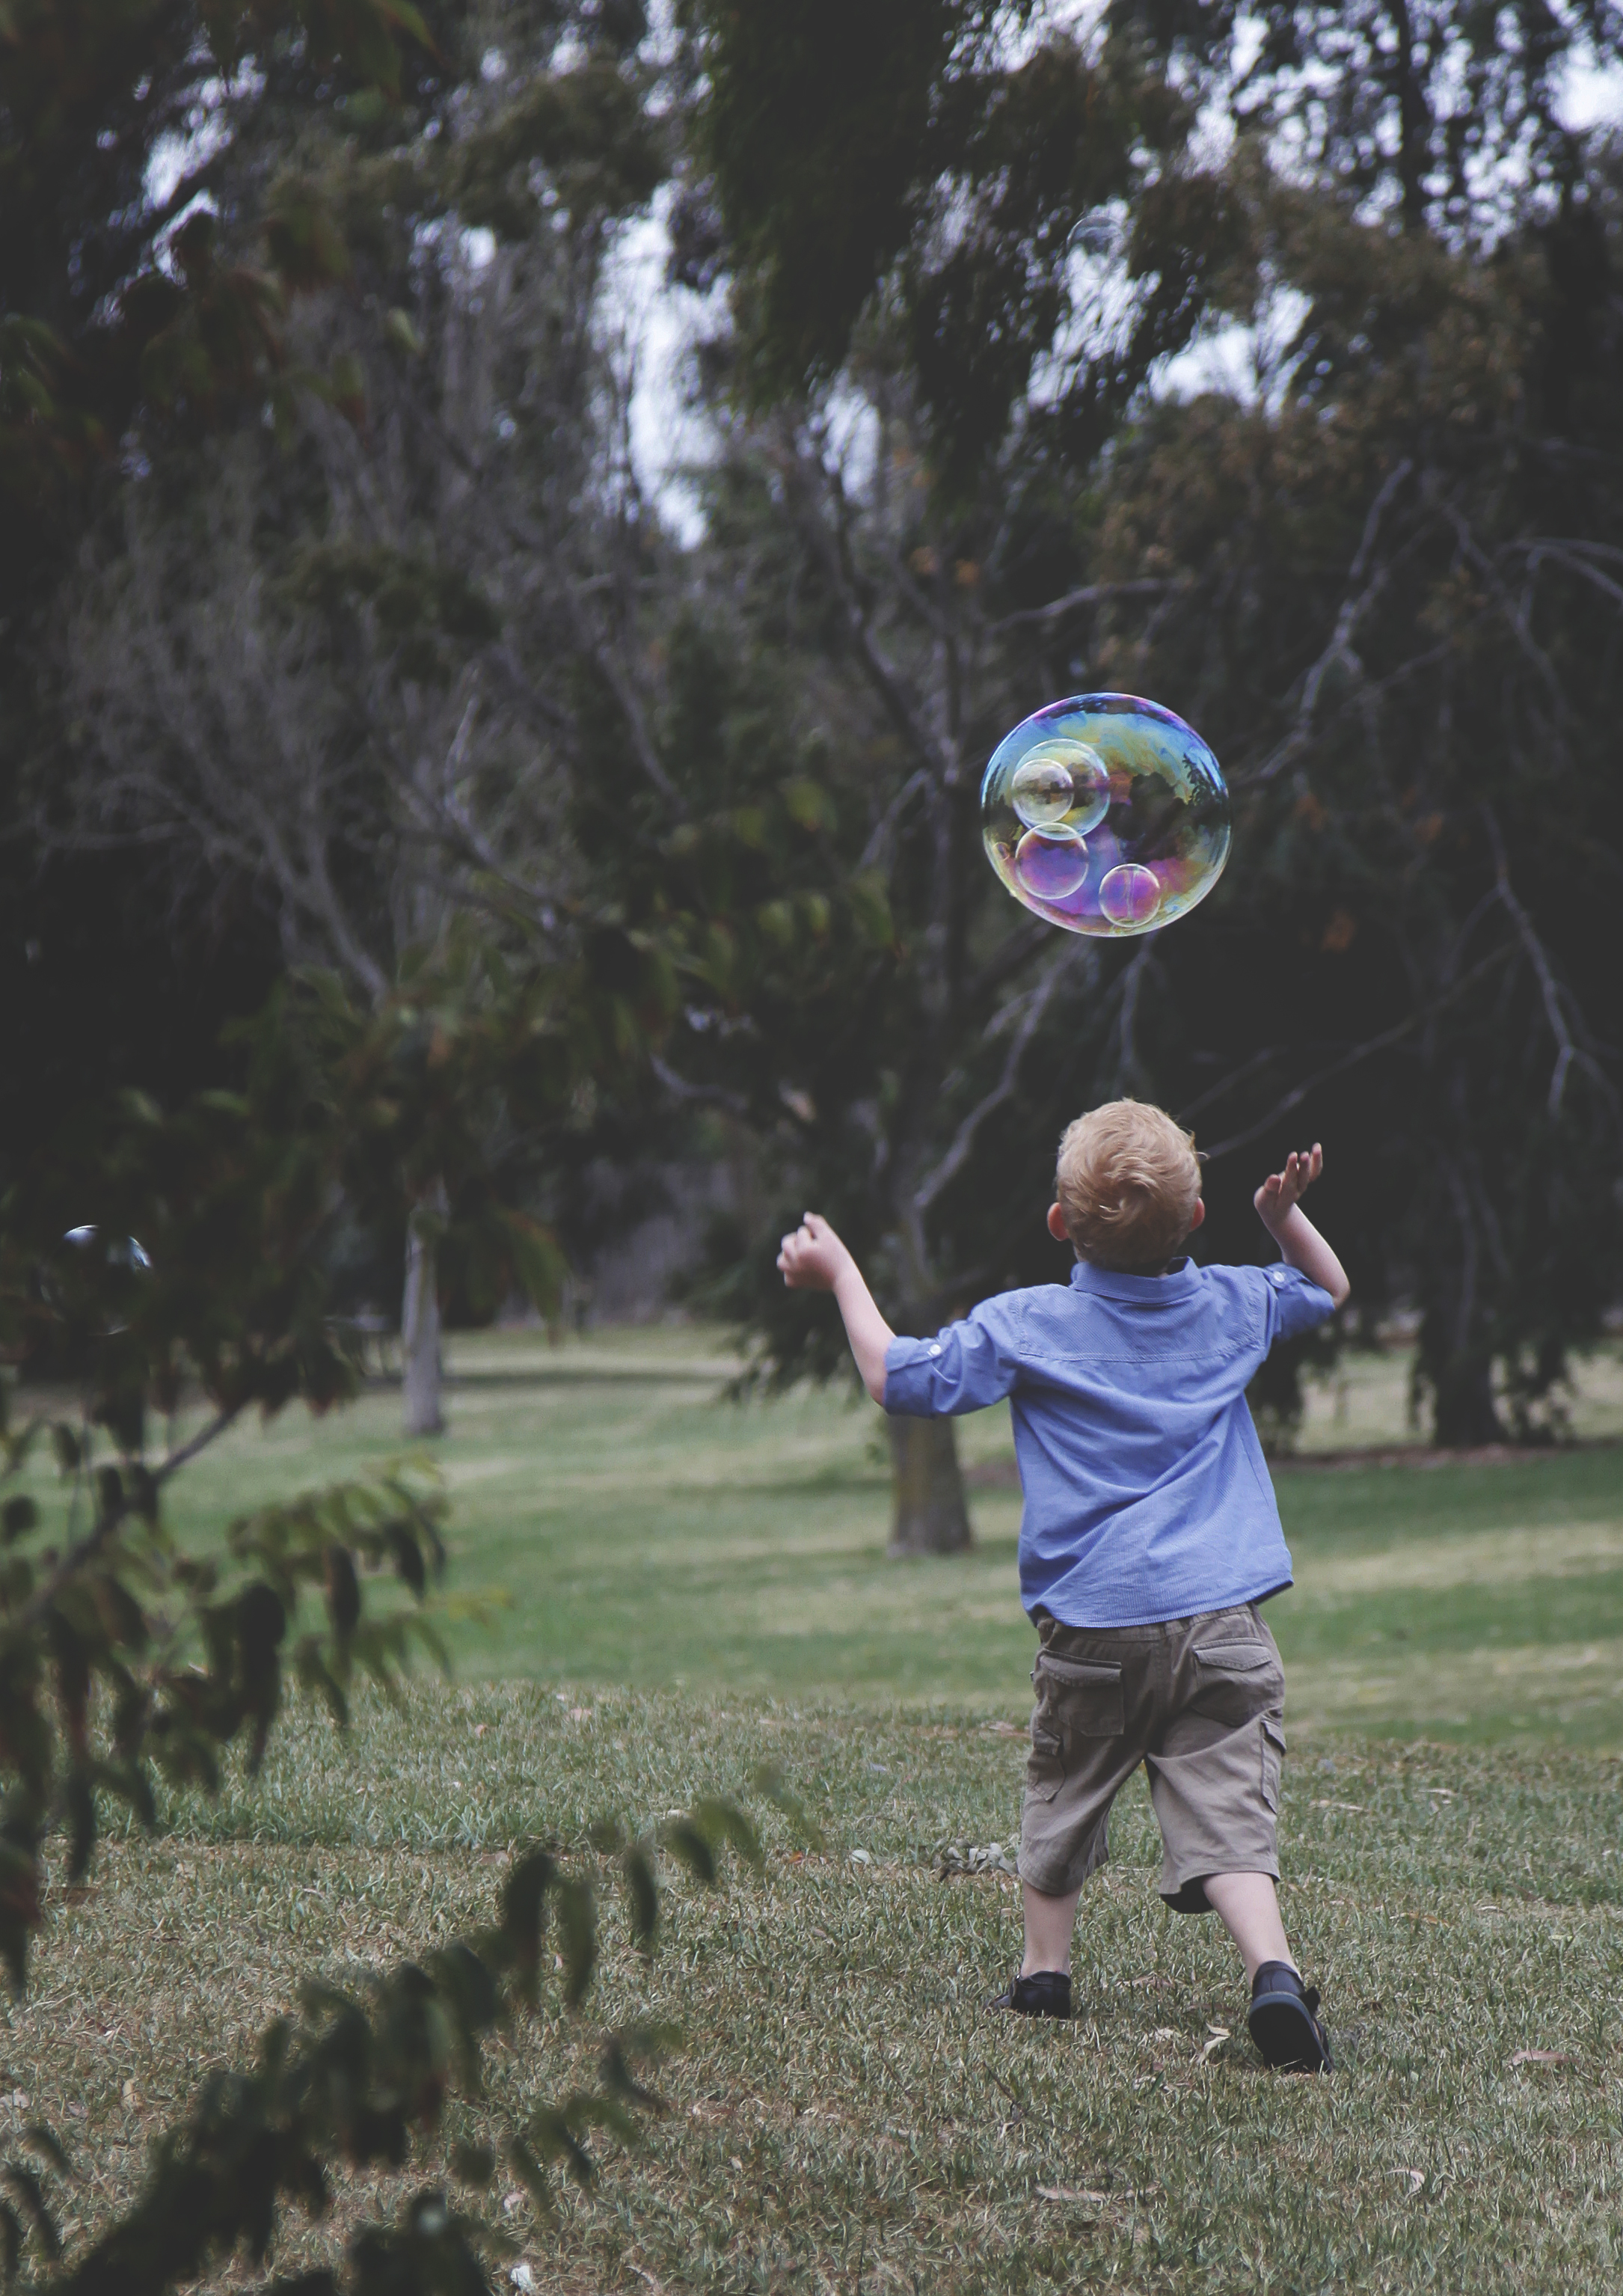 Young boy chasing a large bubble!